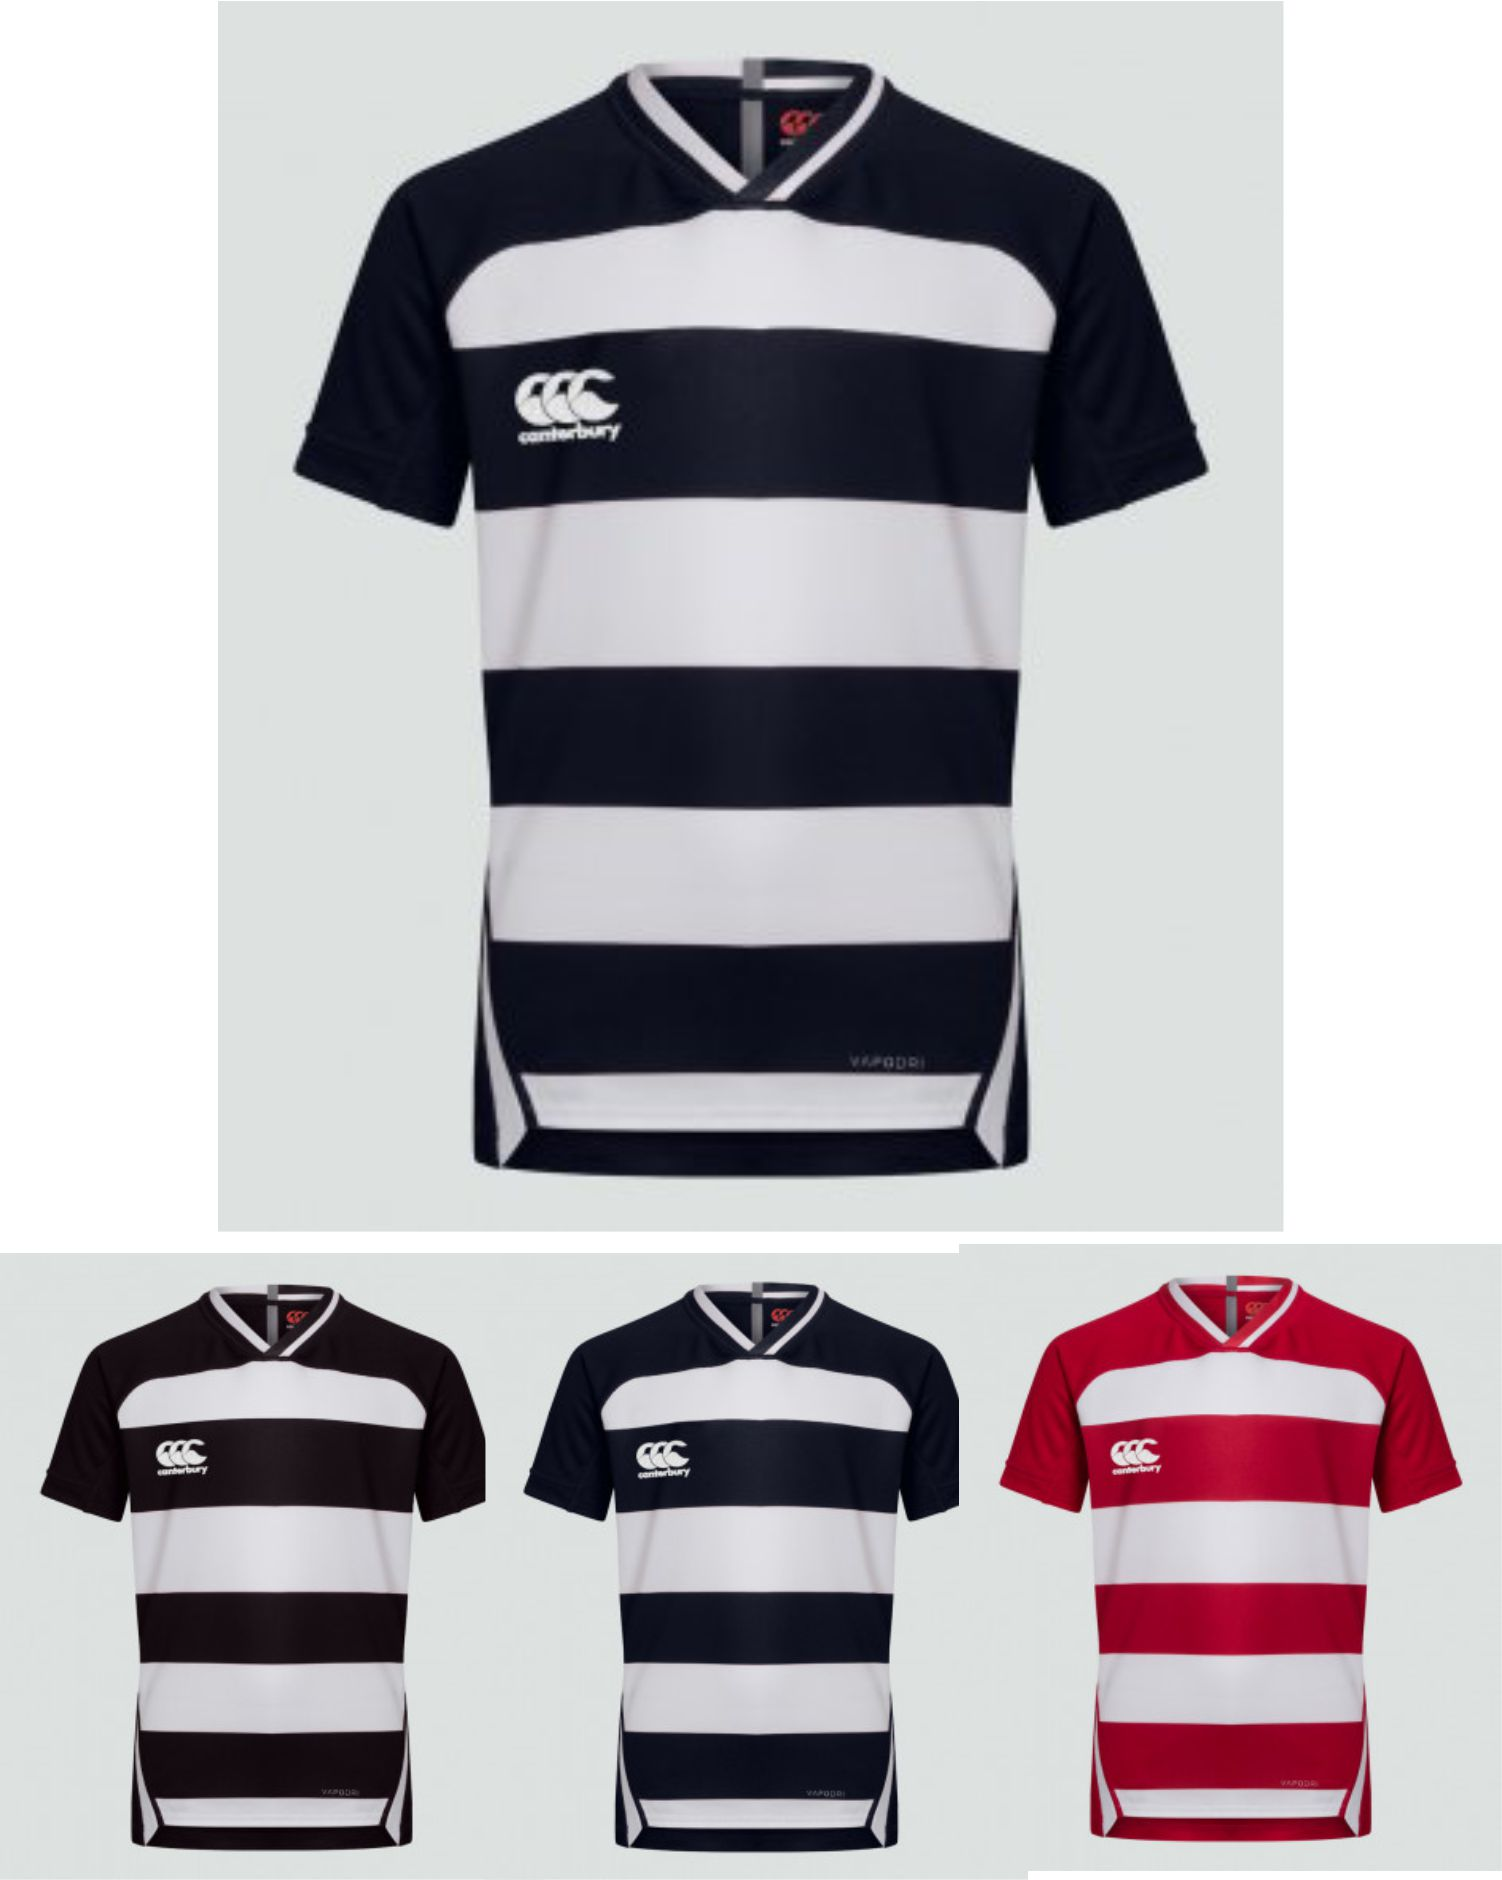 CN303 Canterbury Evader Hooped Jersey